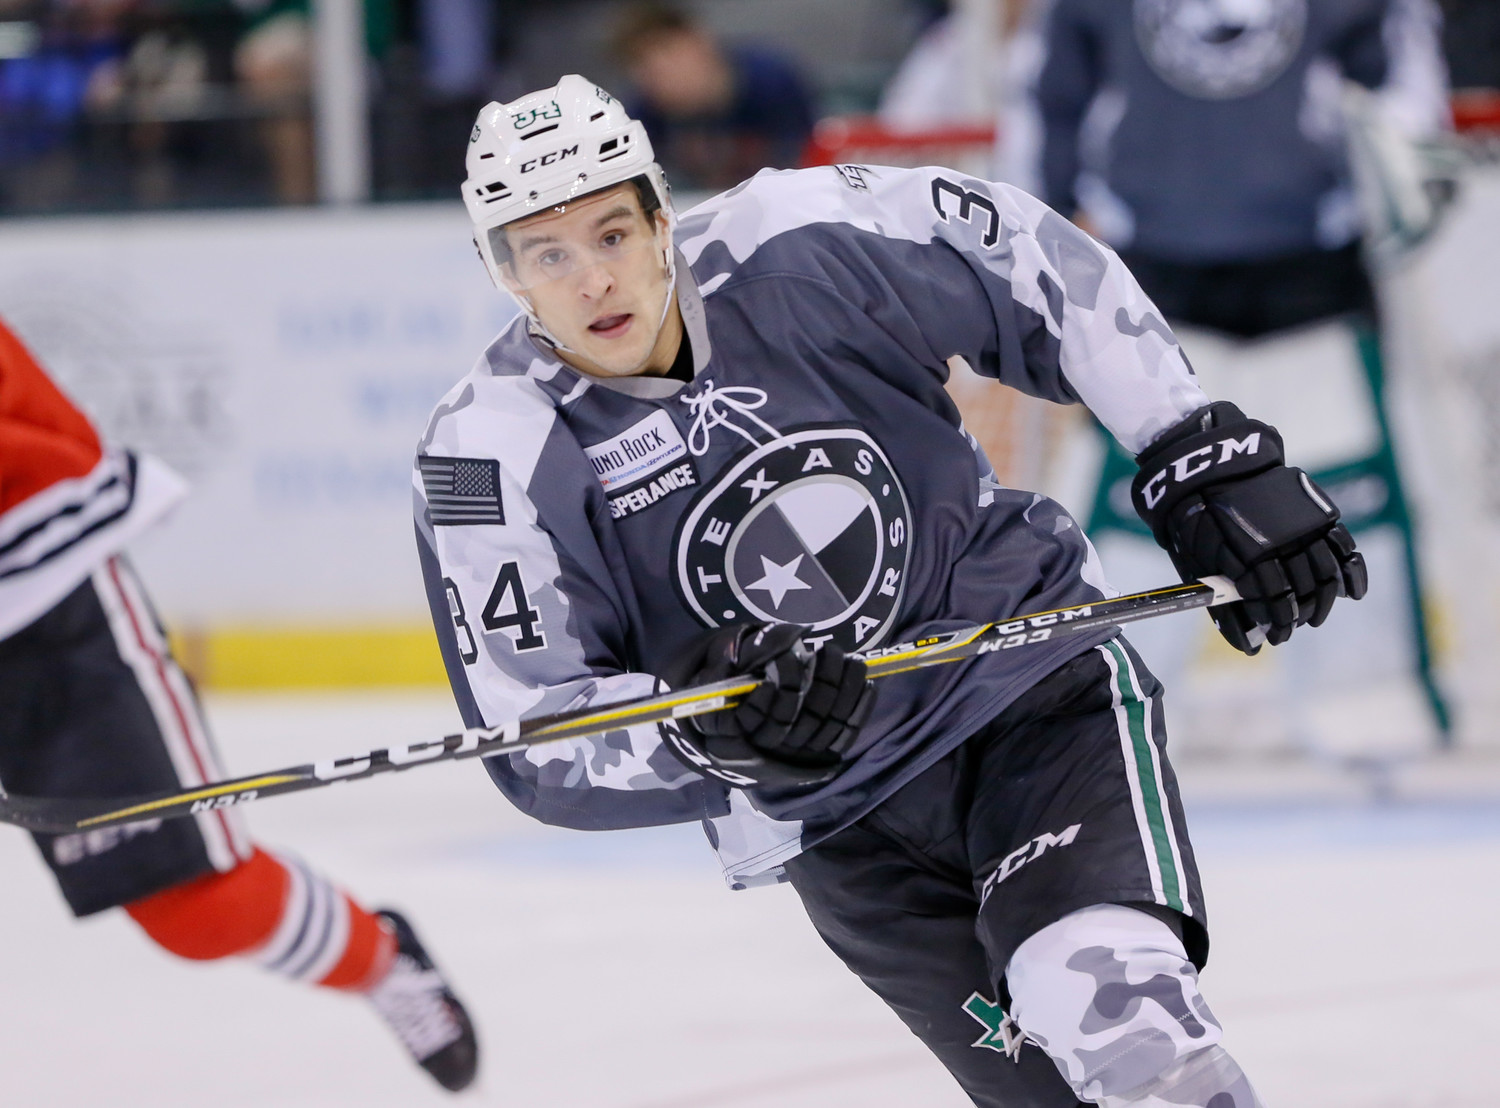 Joel L'Esperance scored the game-winning goal and the Stars rallied from down two goals to beat the Rockford IceHogs 4-3 on Saturday night and clinch a spot in the Calder Cup playoffs.